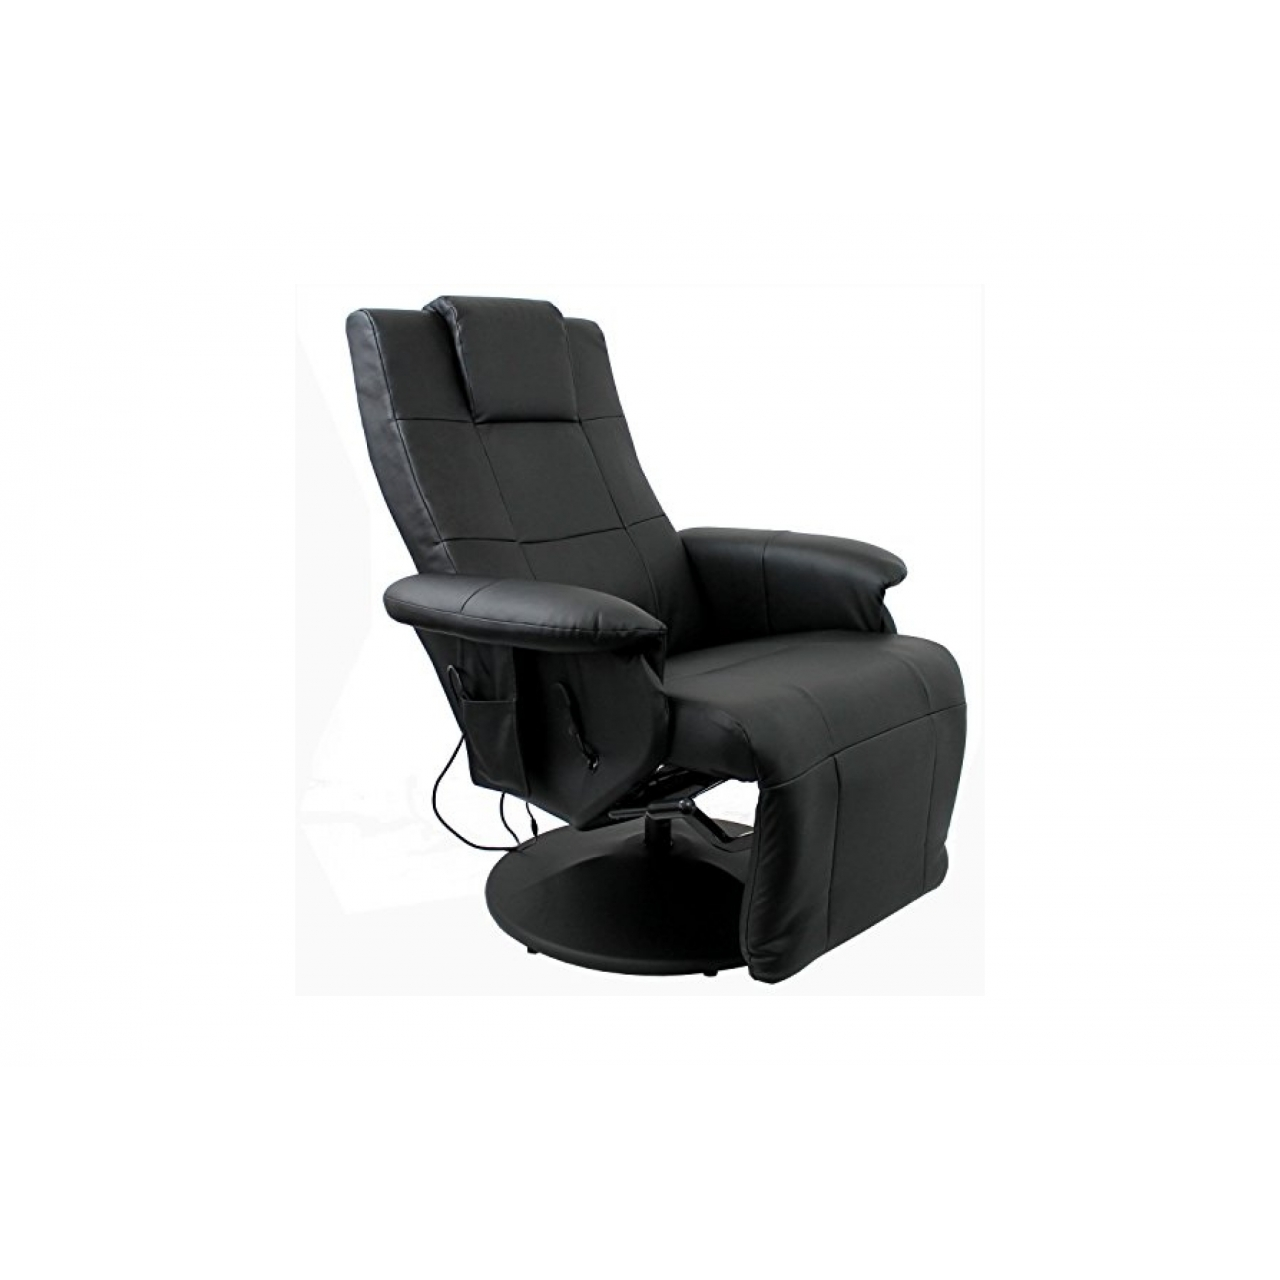 Eco De Massage-sessel Eco-762i Brainlight Sessel